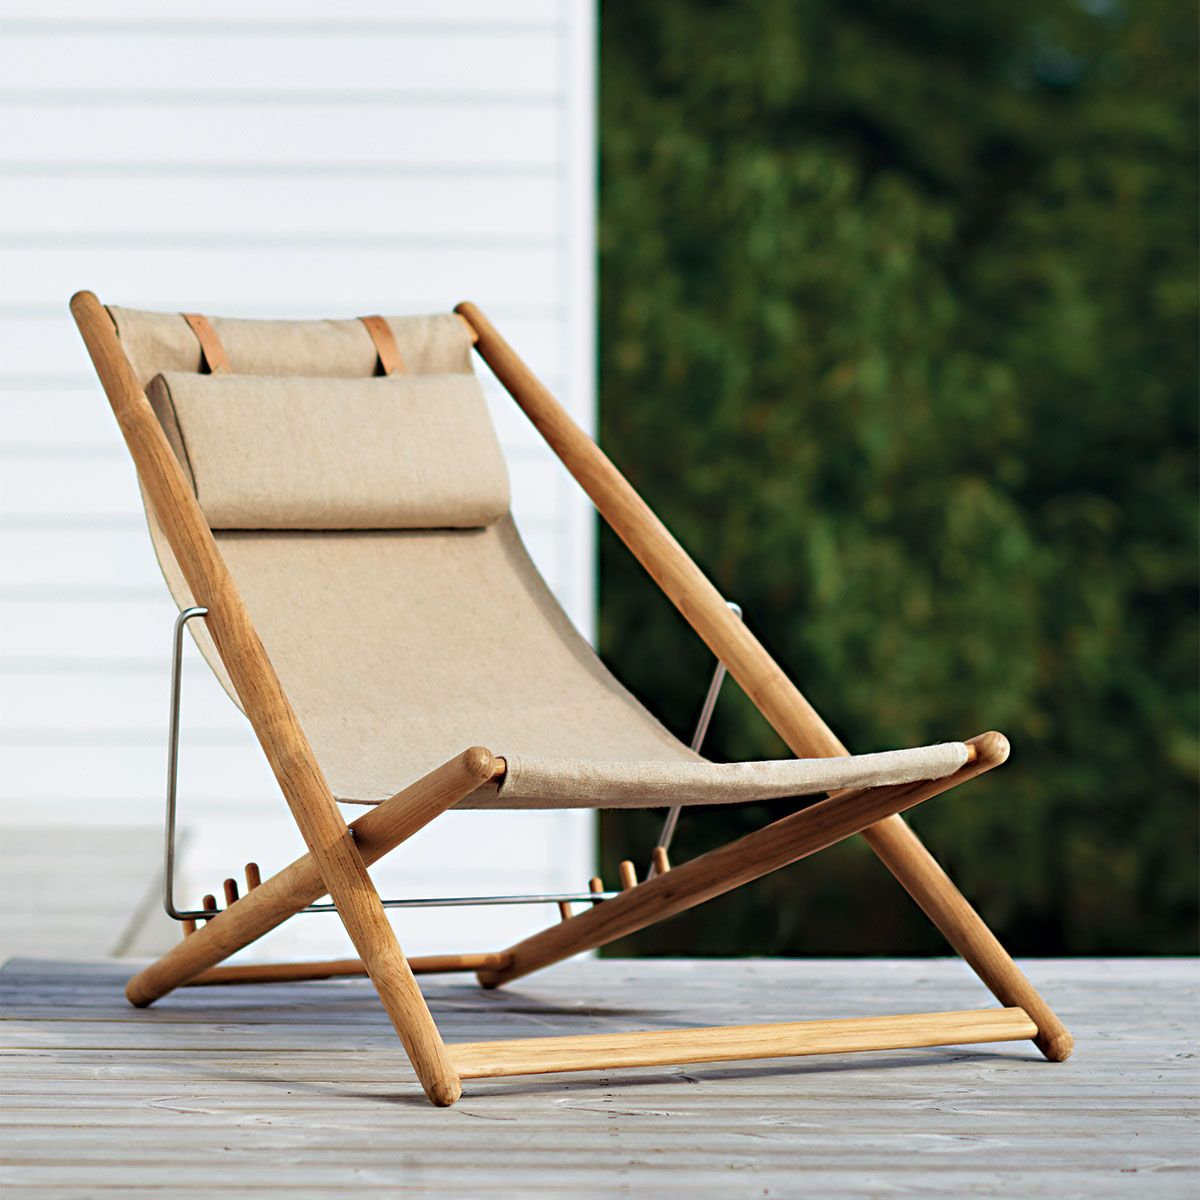 Teak Adjustable Outdoor Sling Chair In Natural Thos Baker Outdoor Sling Chair Sling Chair Outdoor Chairs